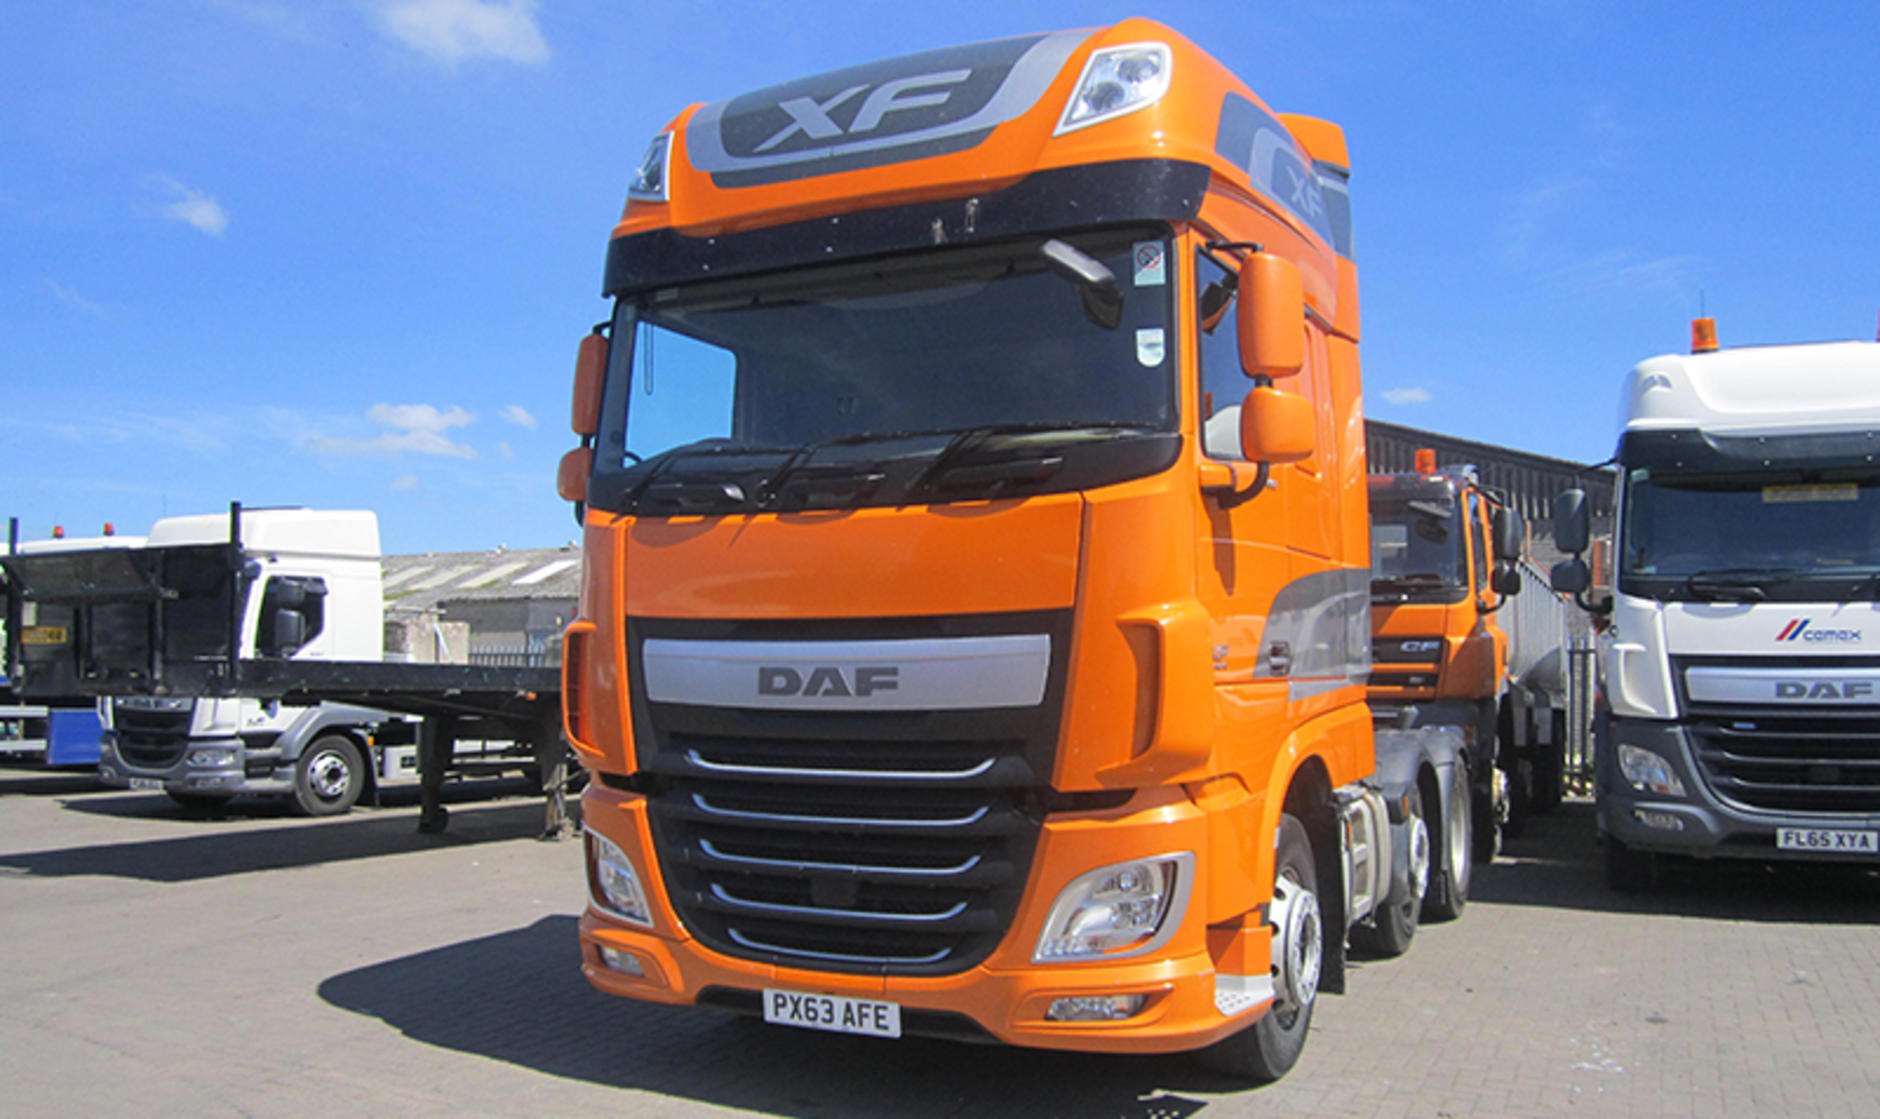 Used Truck Dealerships >> Commercial Motor truck of the week: Daf XF 6x2 tractor with Super Space Cab | Commercial Motor